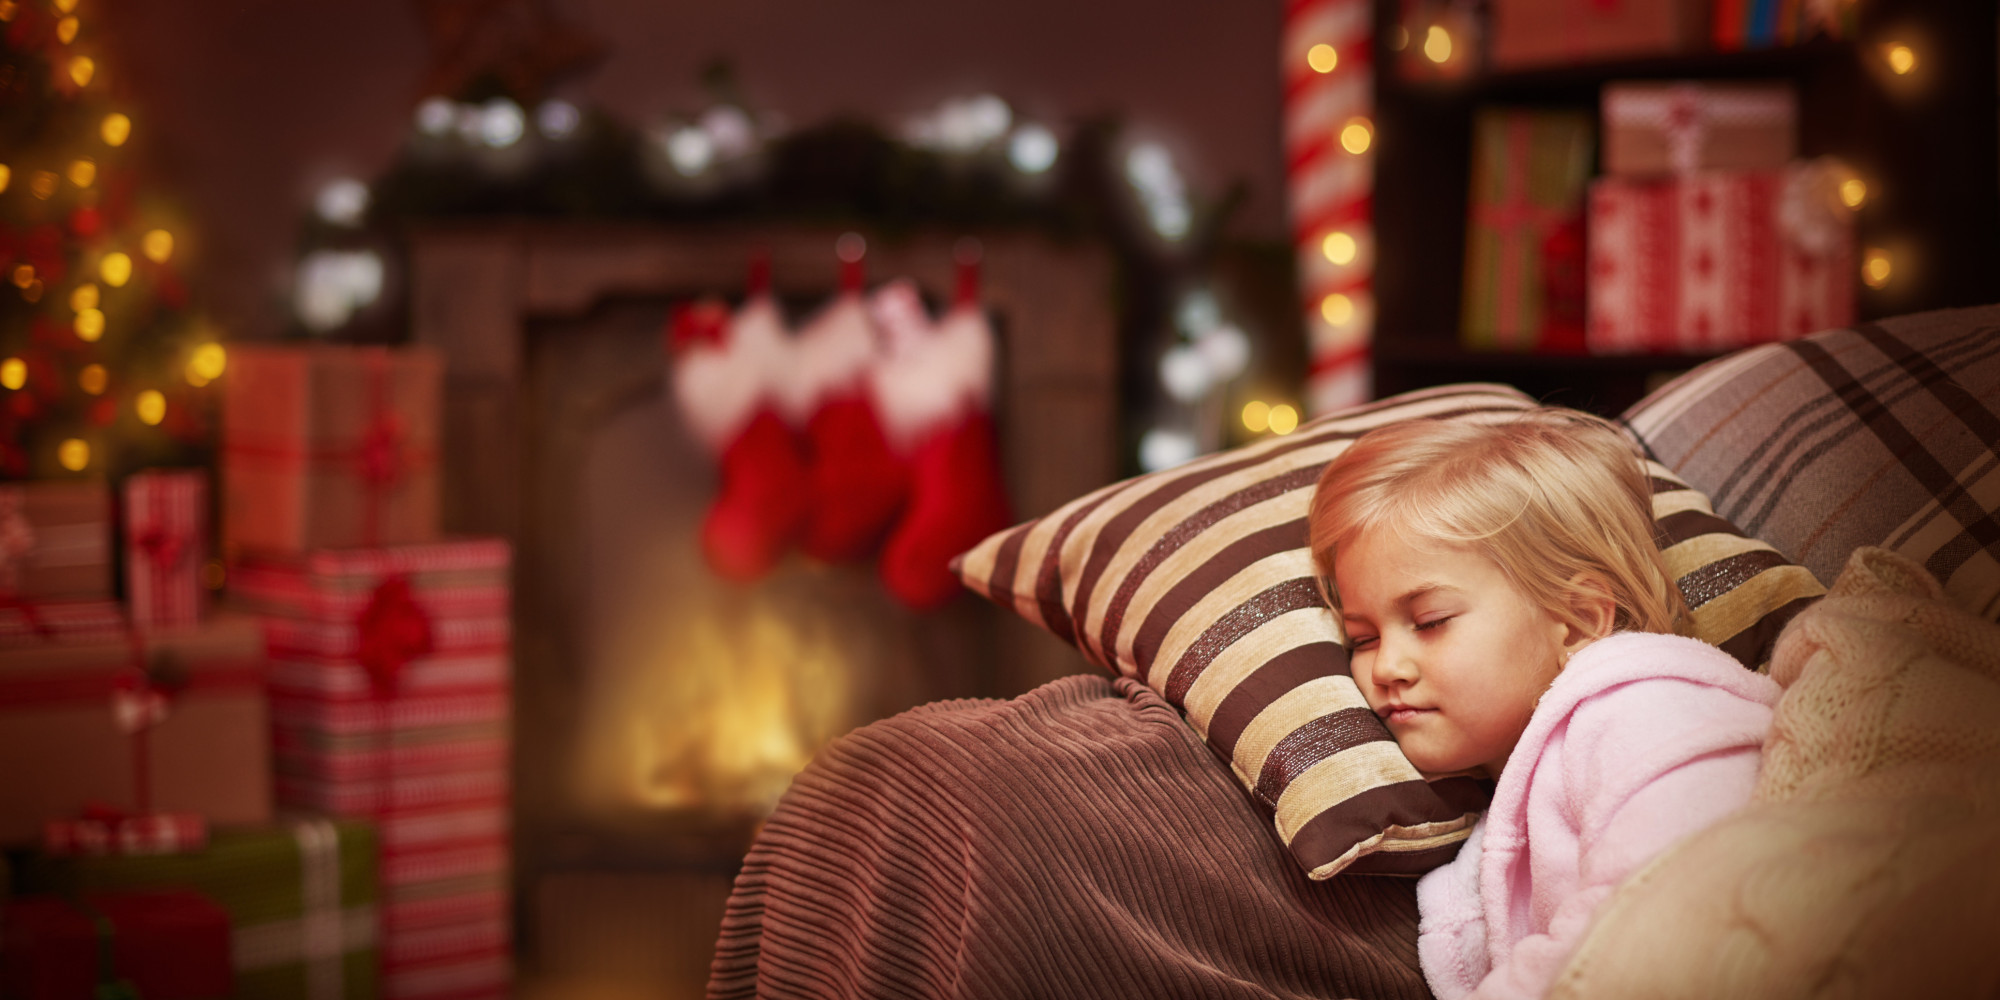 With the excitement of the holiday season, it can often be difficult to get kids to settle down at night. This is especially difficult on Christmas Eve with the promise of .